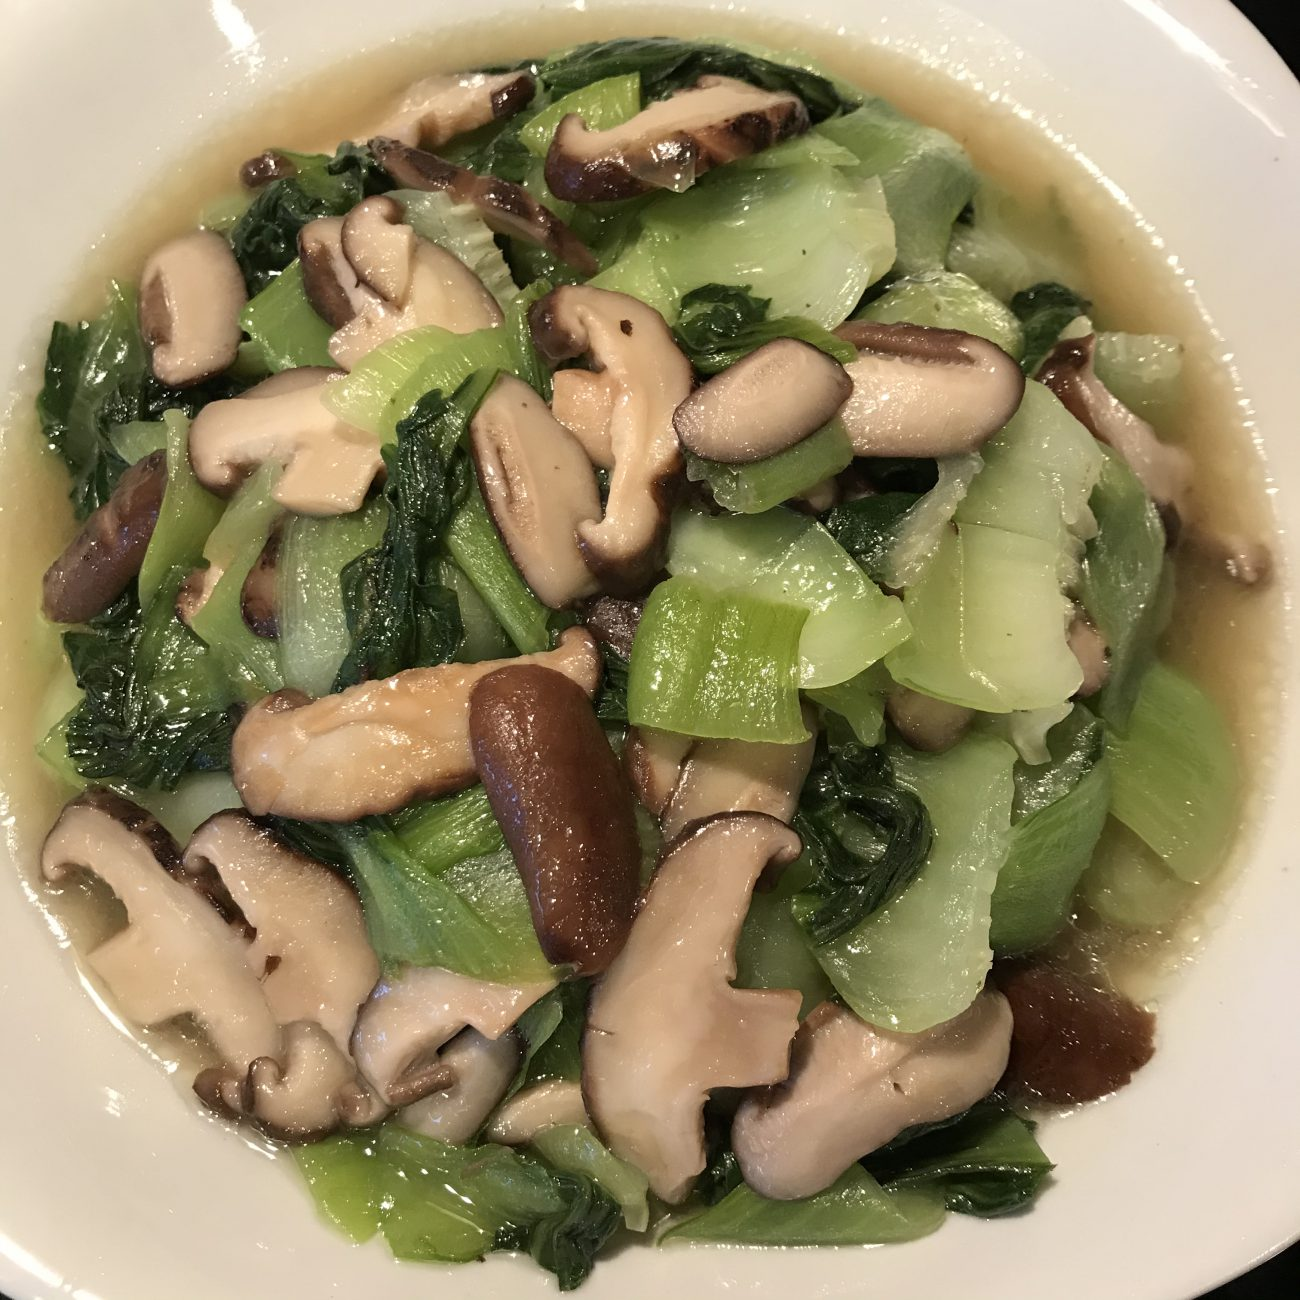 Grill Bokchoy with Shiitake mushrooms